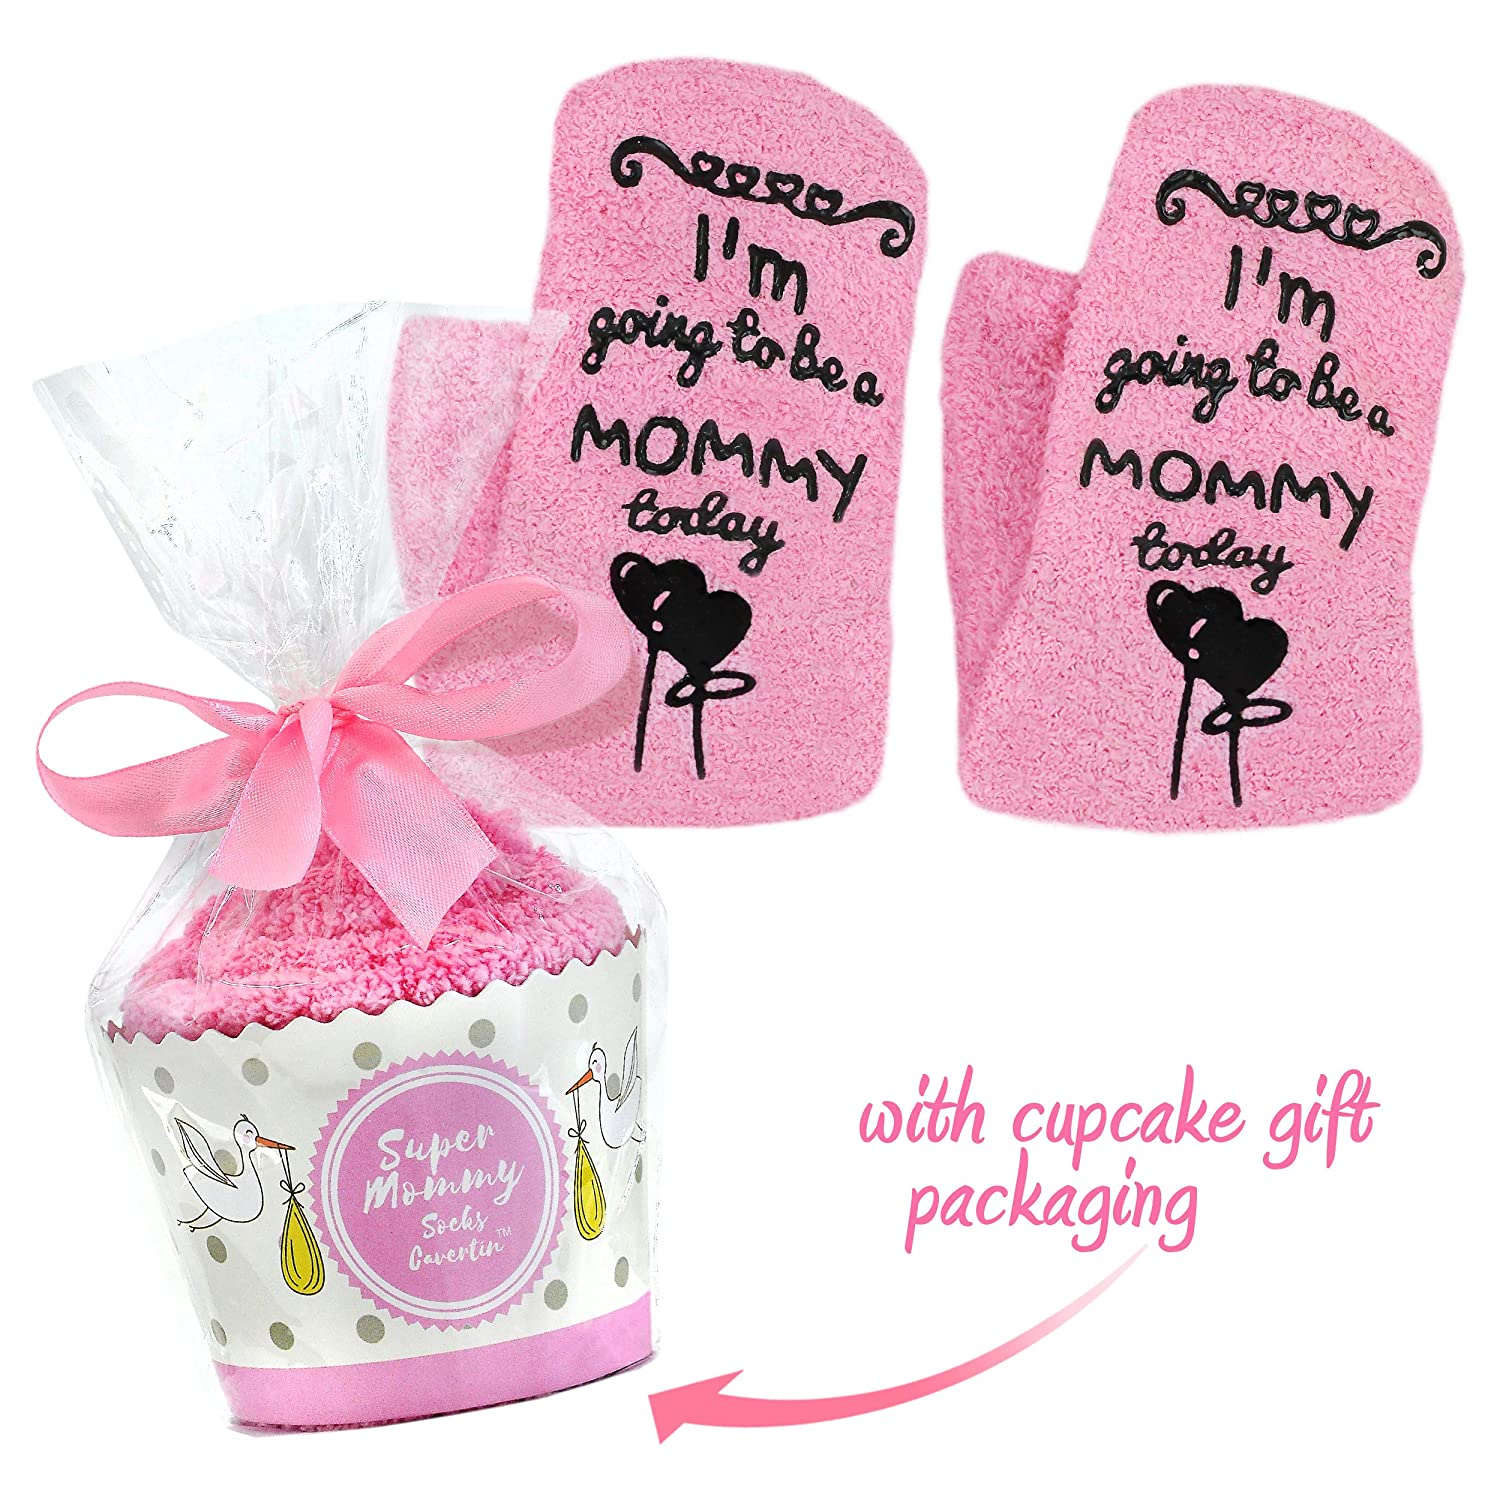 Cavertin Labor and Delivery Socks with Non Skid Grip & Cupcake Gift Packaging | Perfect Baby Shower Gift | Pretty Hospital Socks | Maternity Gift For Women | Best Birth Socks Cavertin Enterprises